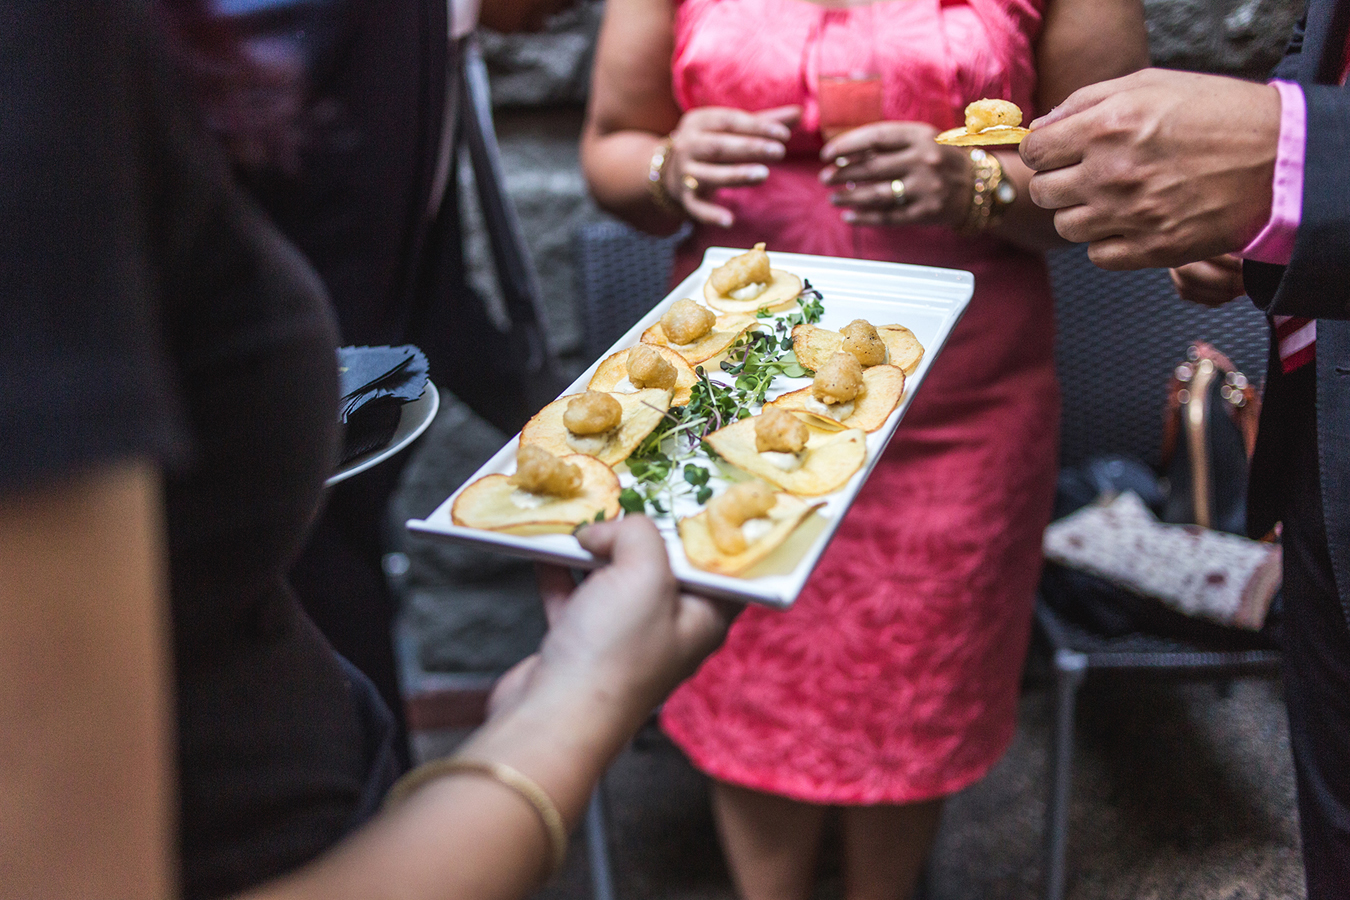 Fish and chip appetizers are handed out during the cocktail hour at a wedding in Yaletown